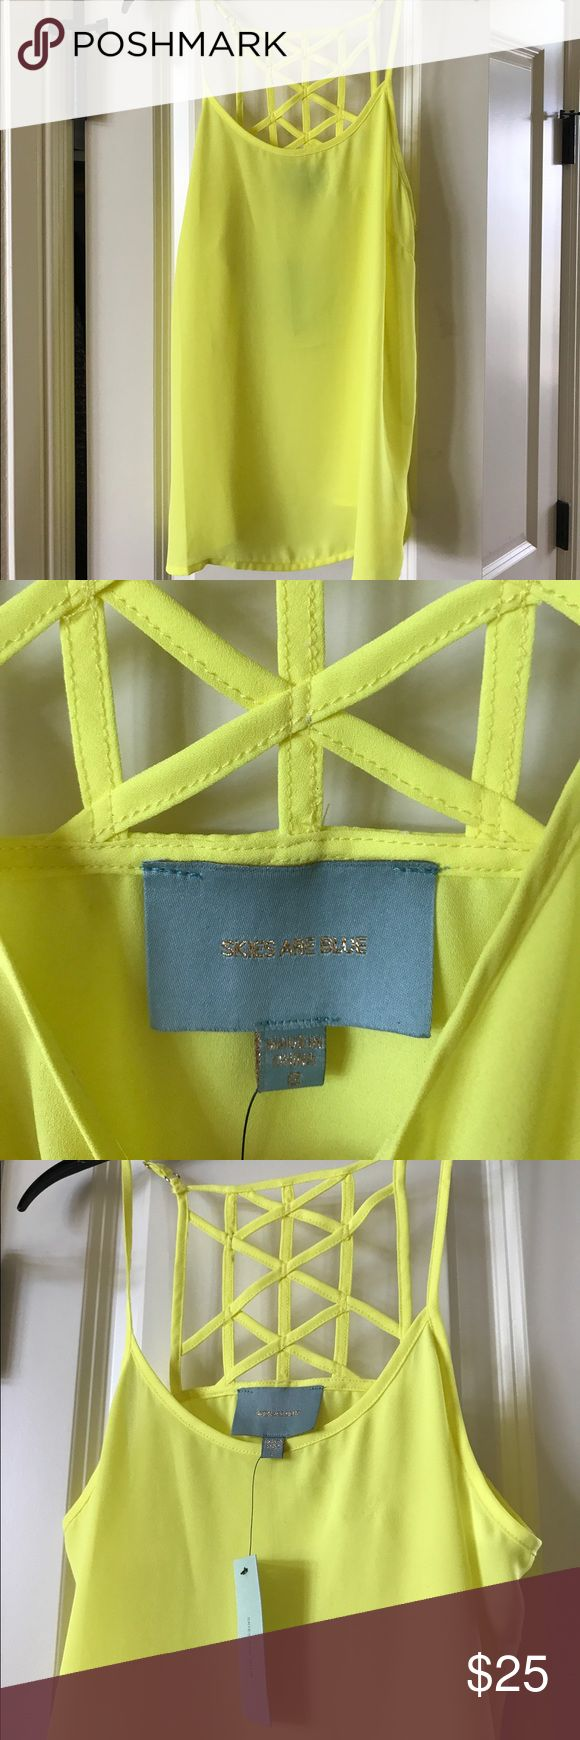 Neon yellow cami - perfect summer top Neon yellow cami with crisscross design on back. Nwt Skies Are Blue Tops Camisoles